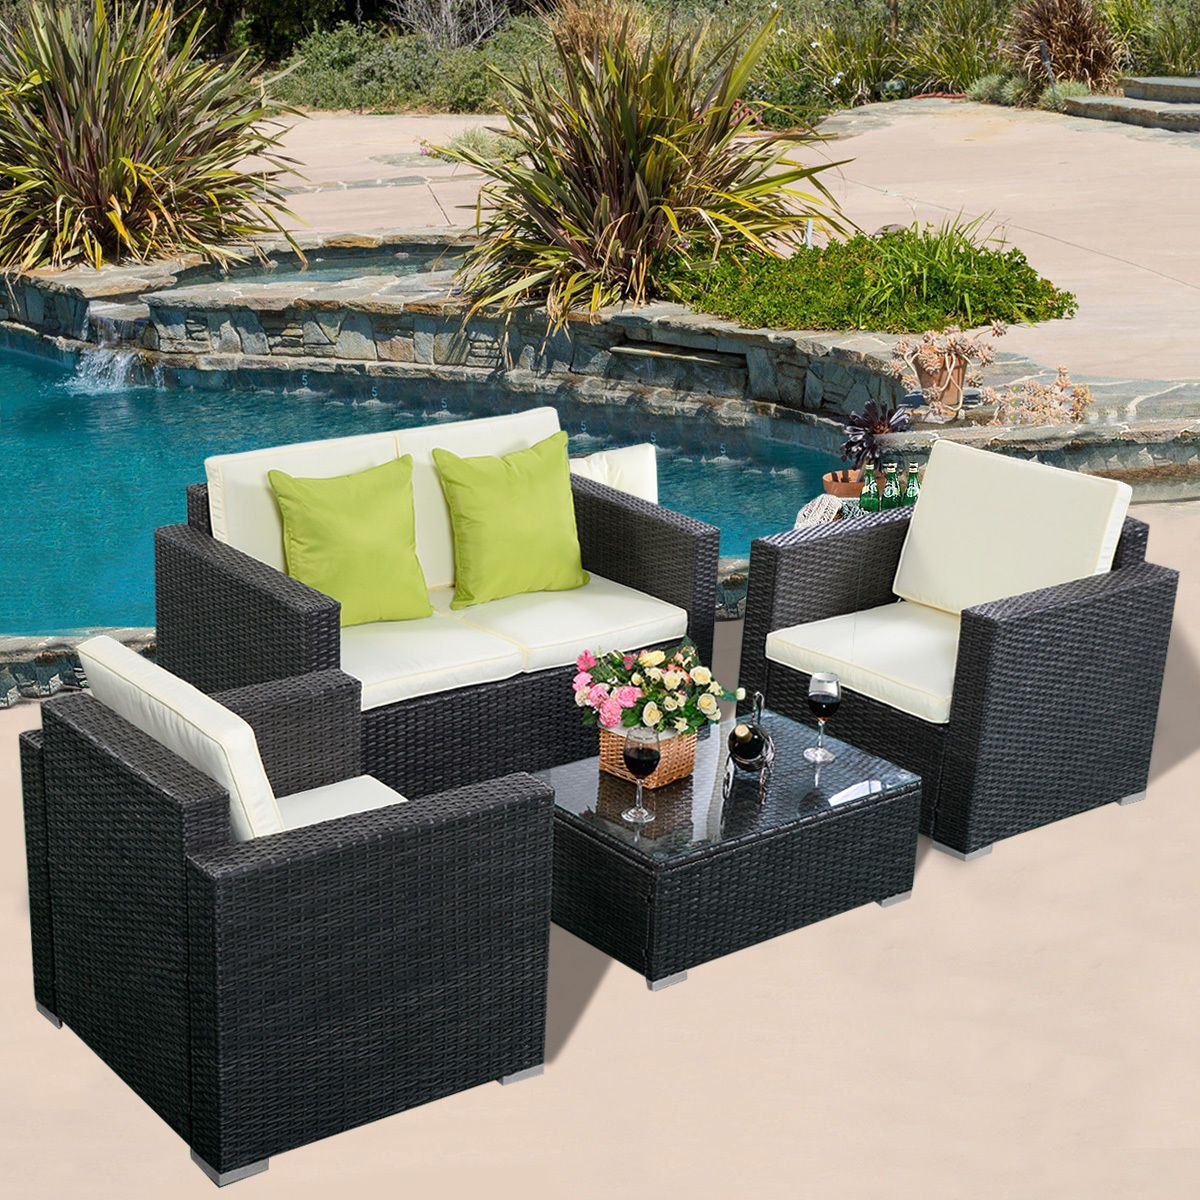 Pc wicker rattan sofa furniture set patio garden lawn cushioned